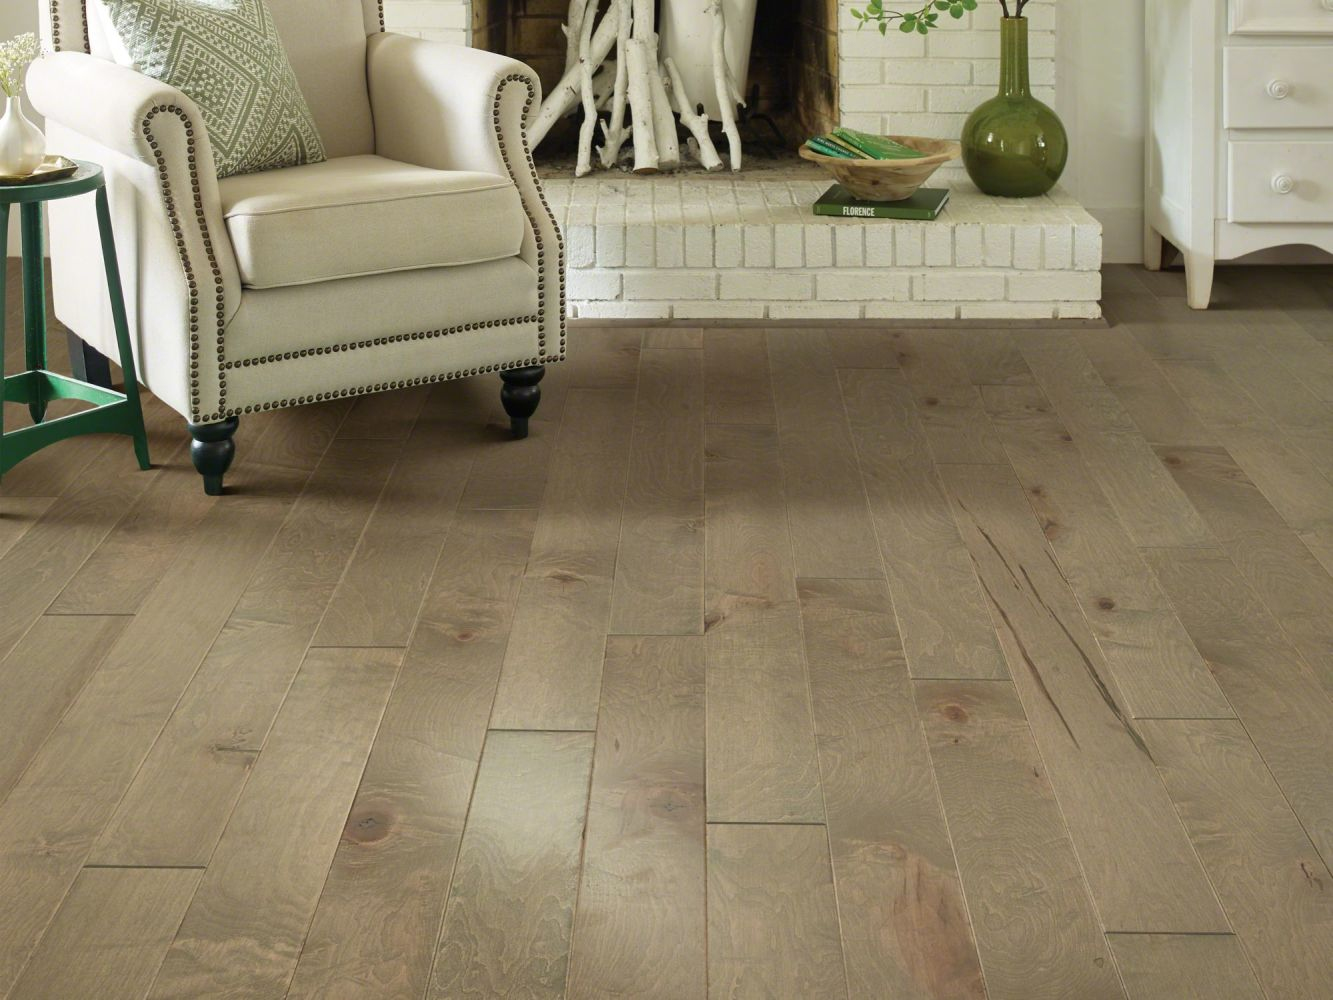 Shaw Floors Duras Hardwood Palm Beach II Oceanside 00529_HW639